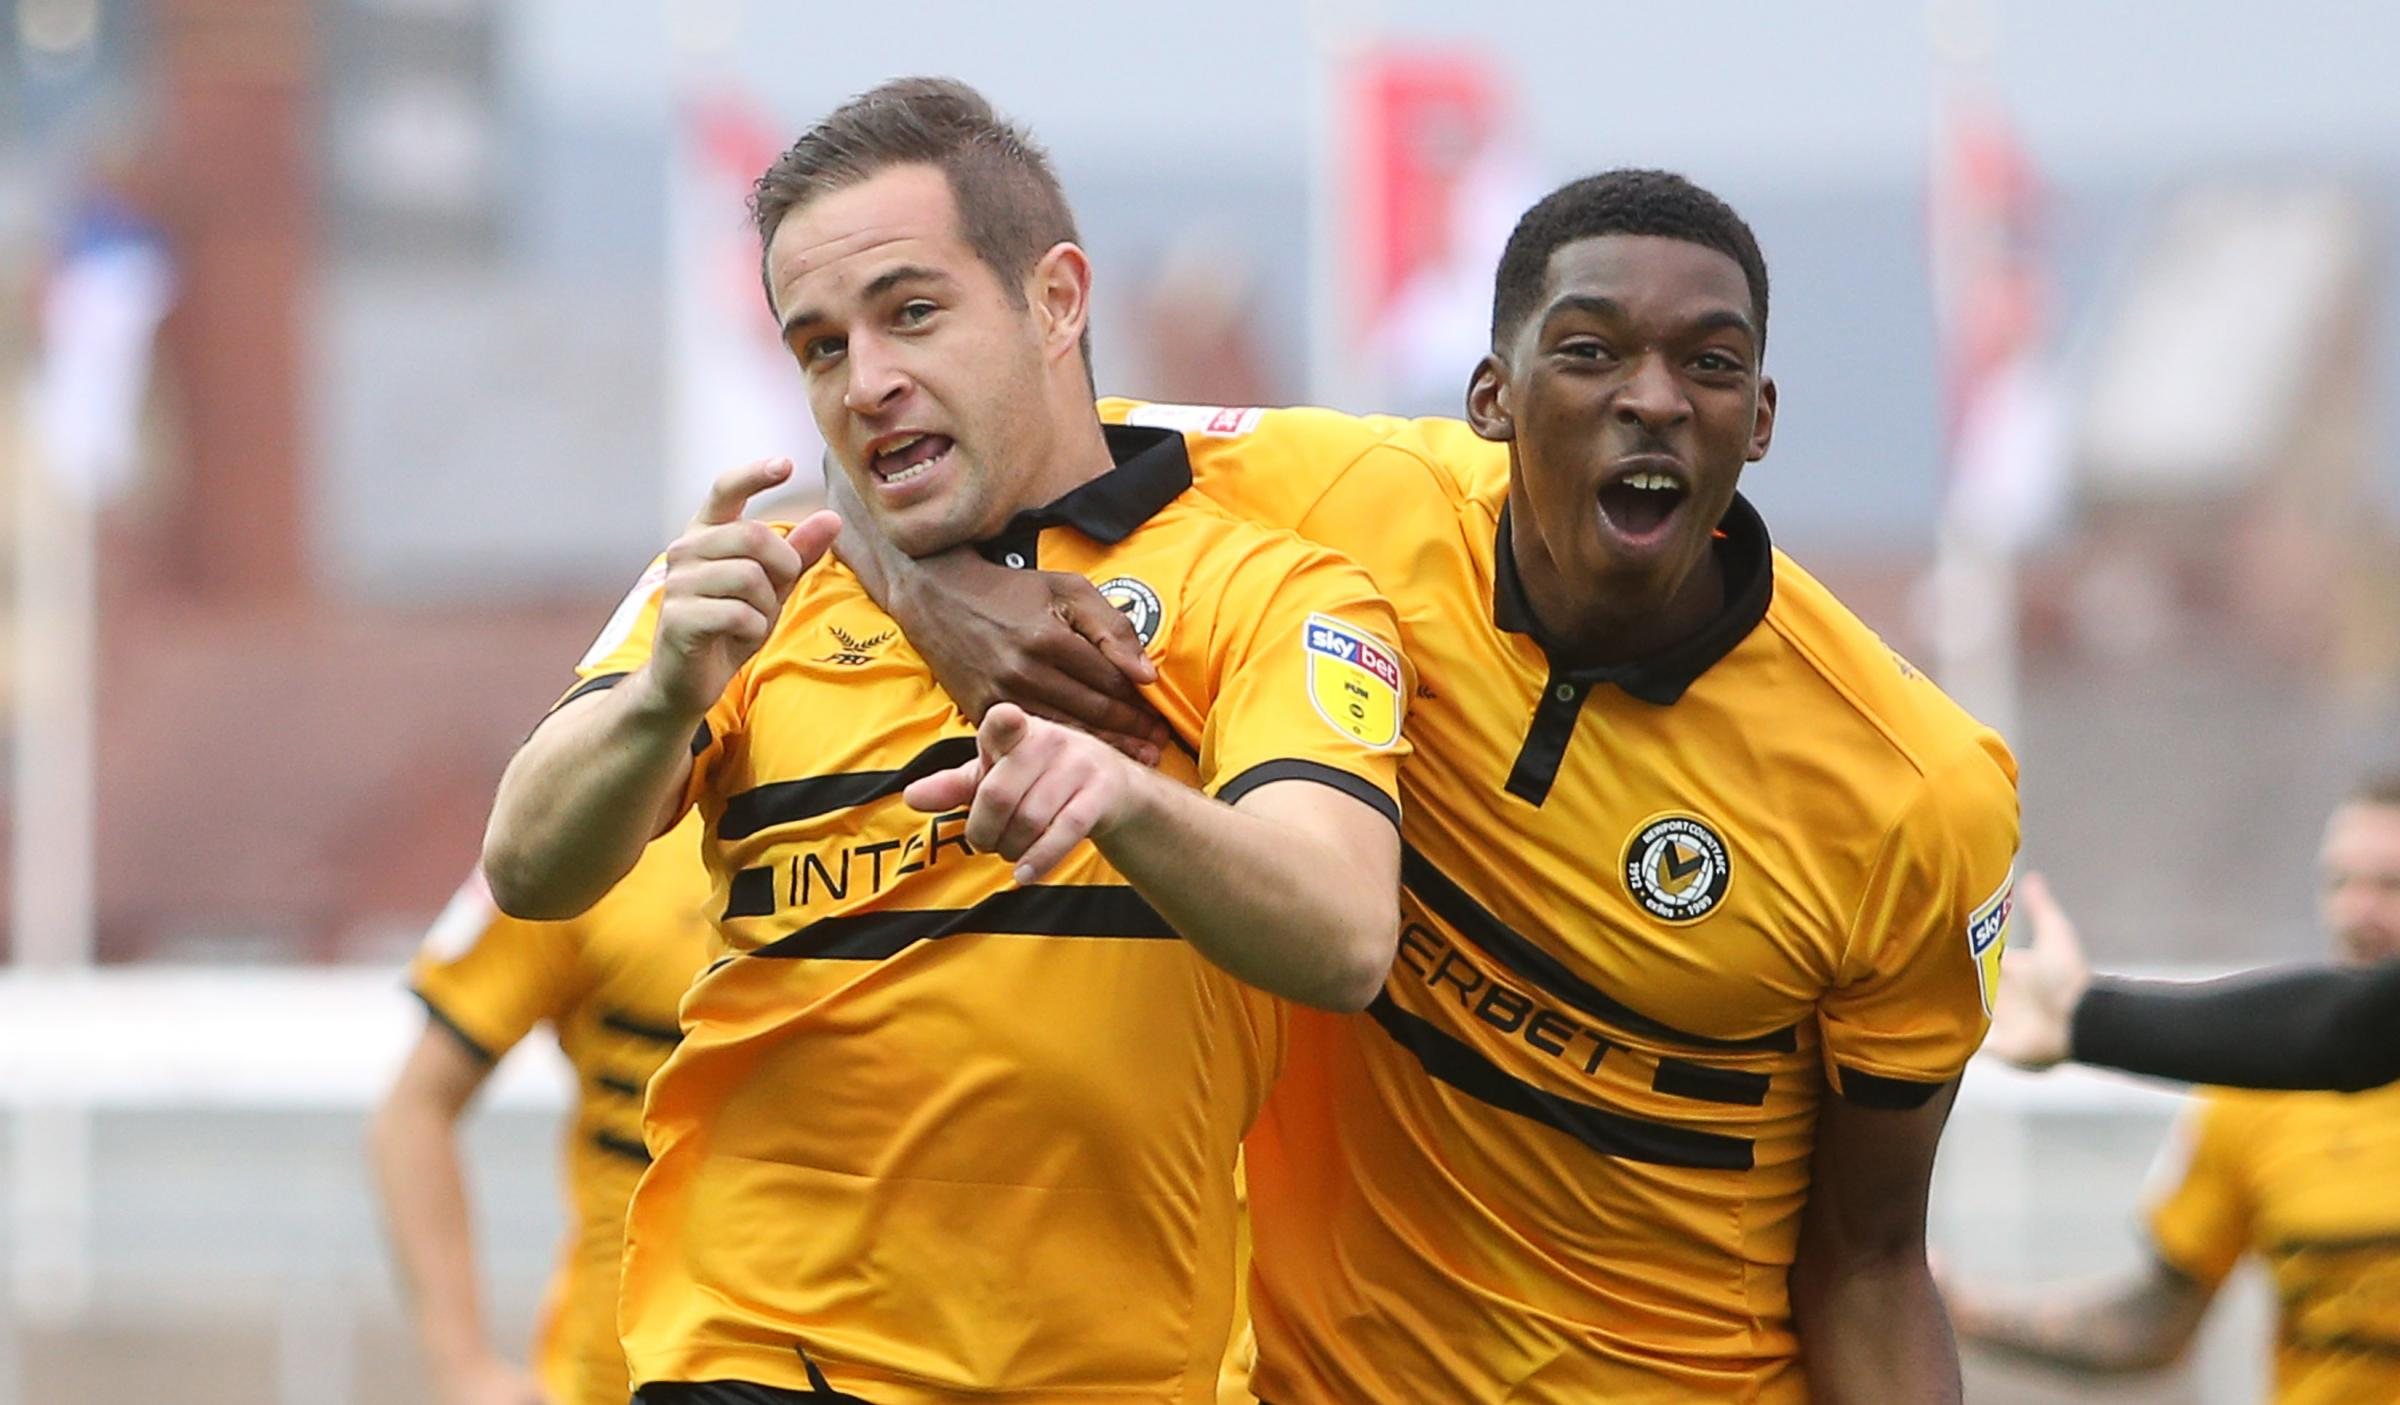 SCREAMER: Matty Dolan, left, celebrates his super strike against Stevenage with Newport County teammate Tyreeq Bakinson. Picture: Huw Evans Agency